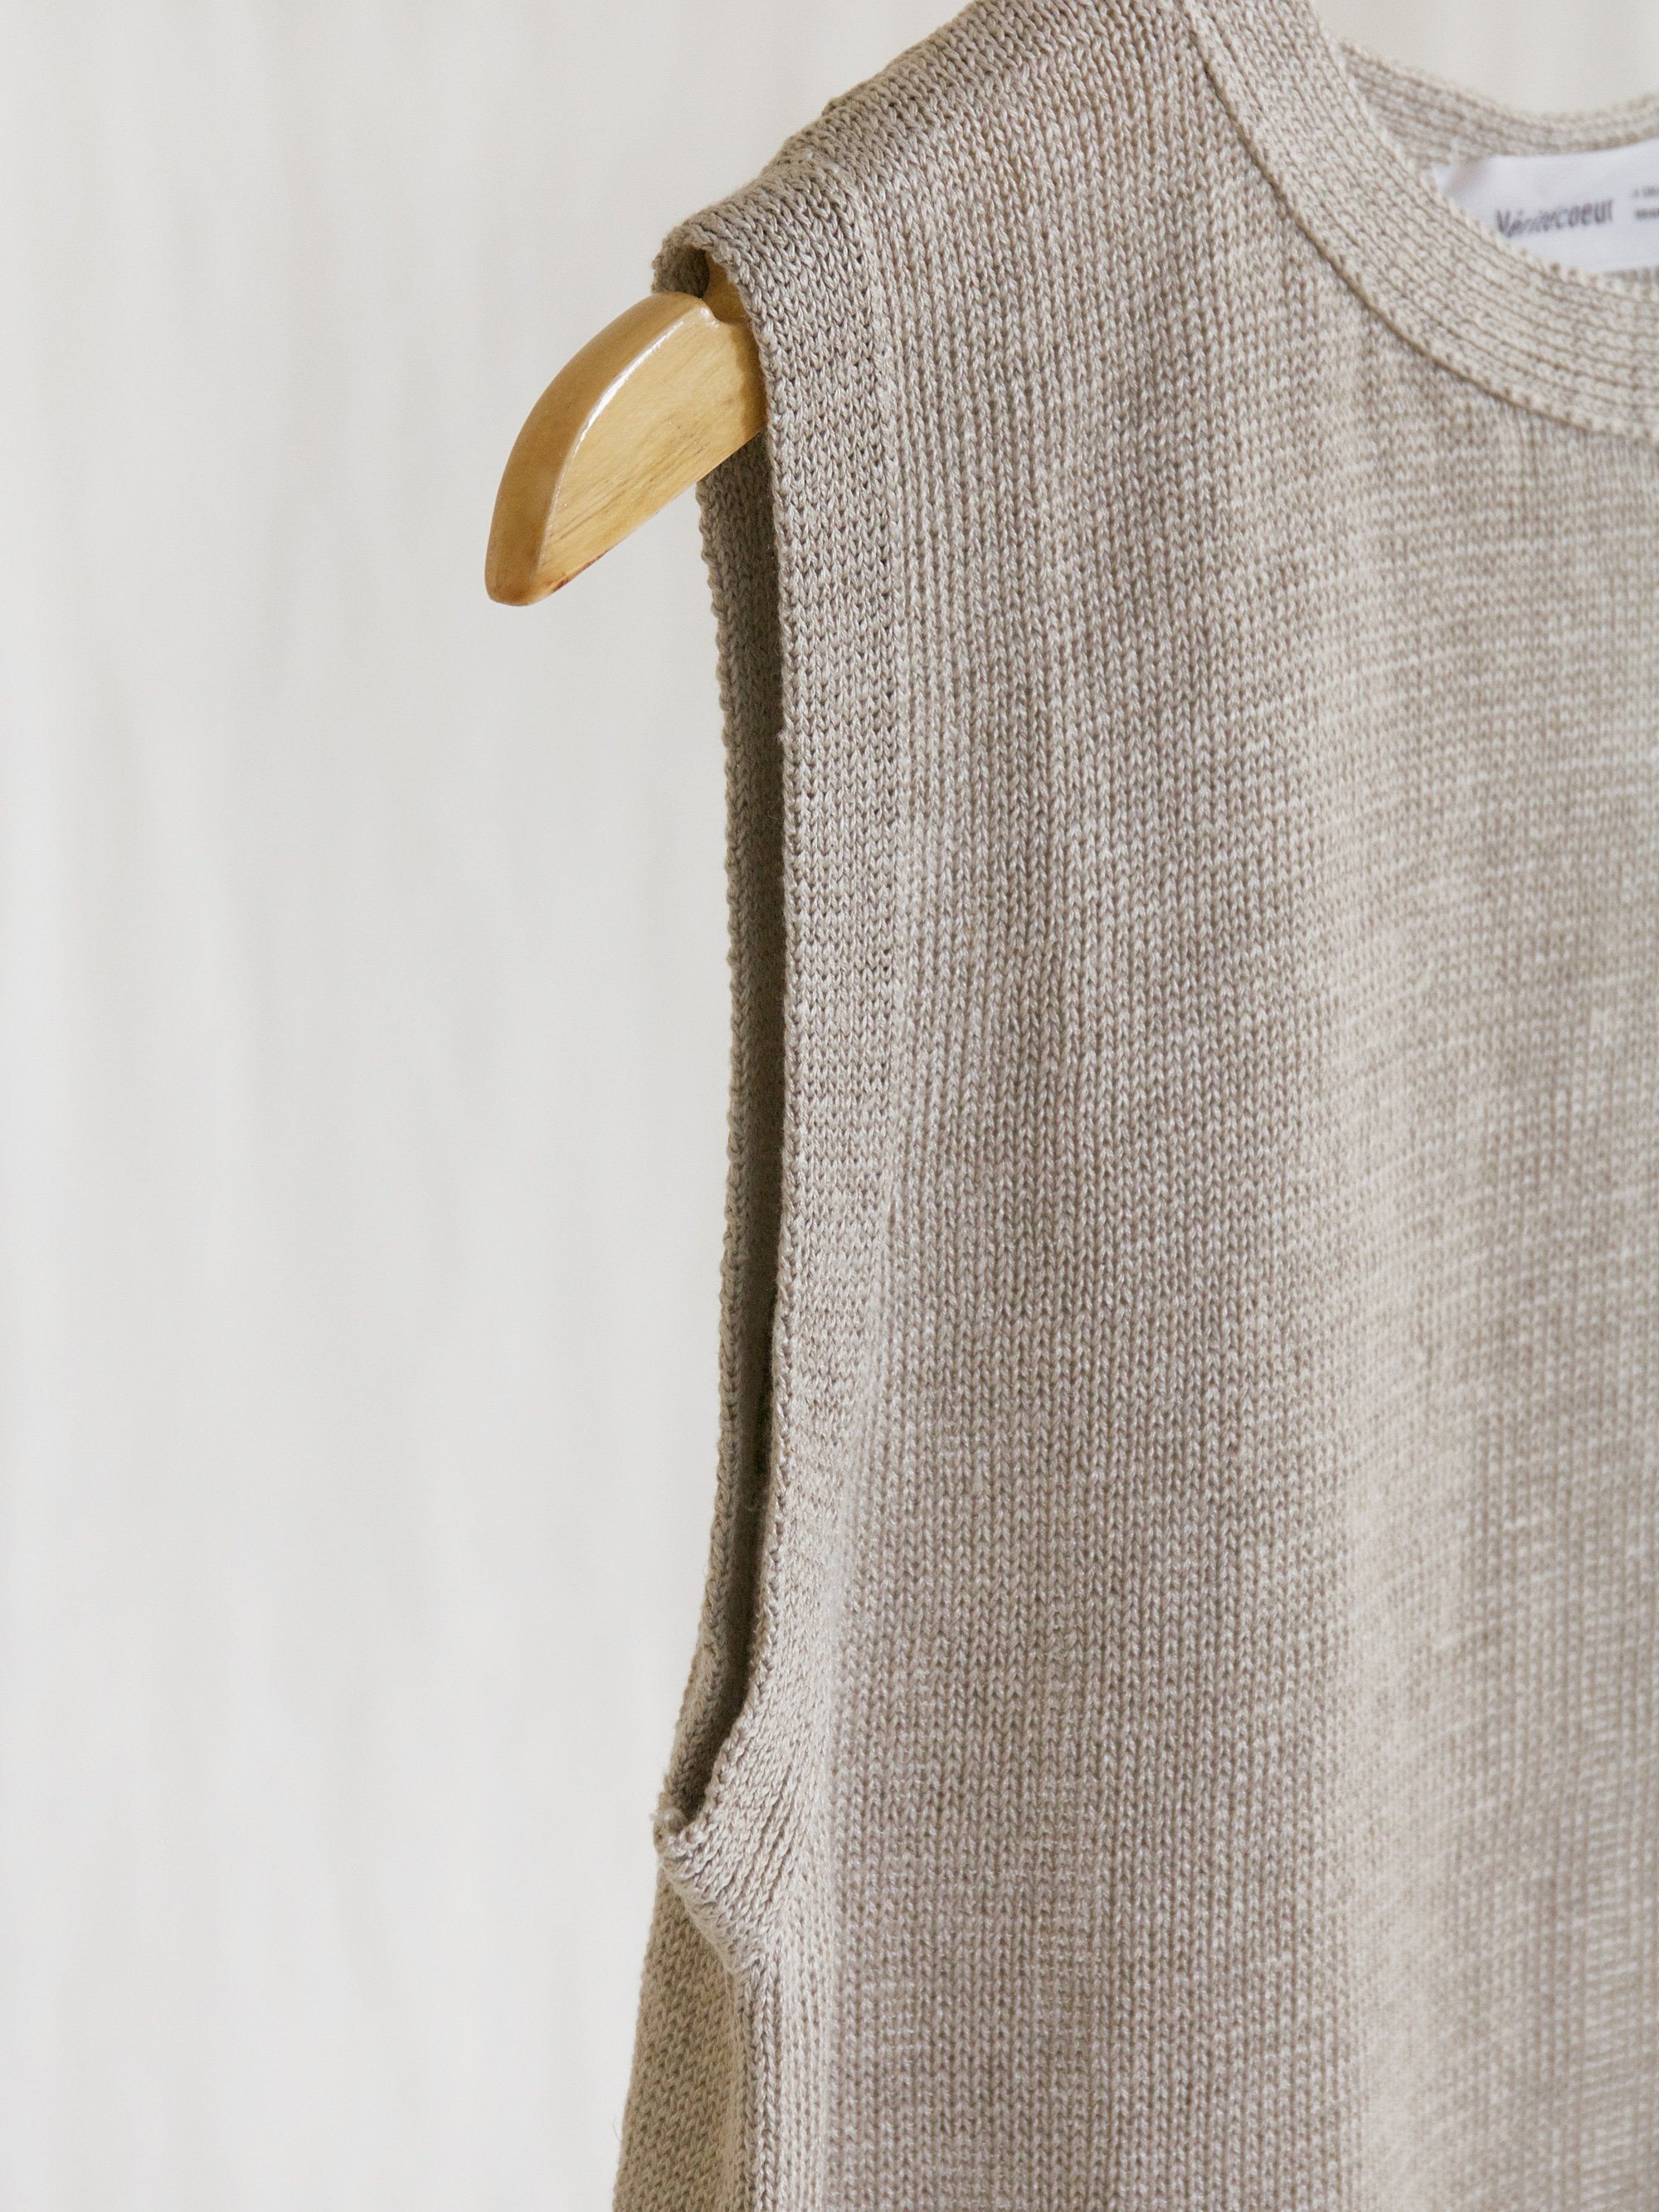 Namu Shop - Veritecoeur Linen Vest - Natural